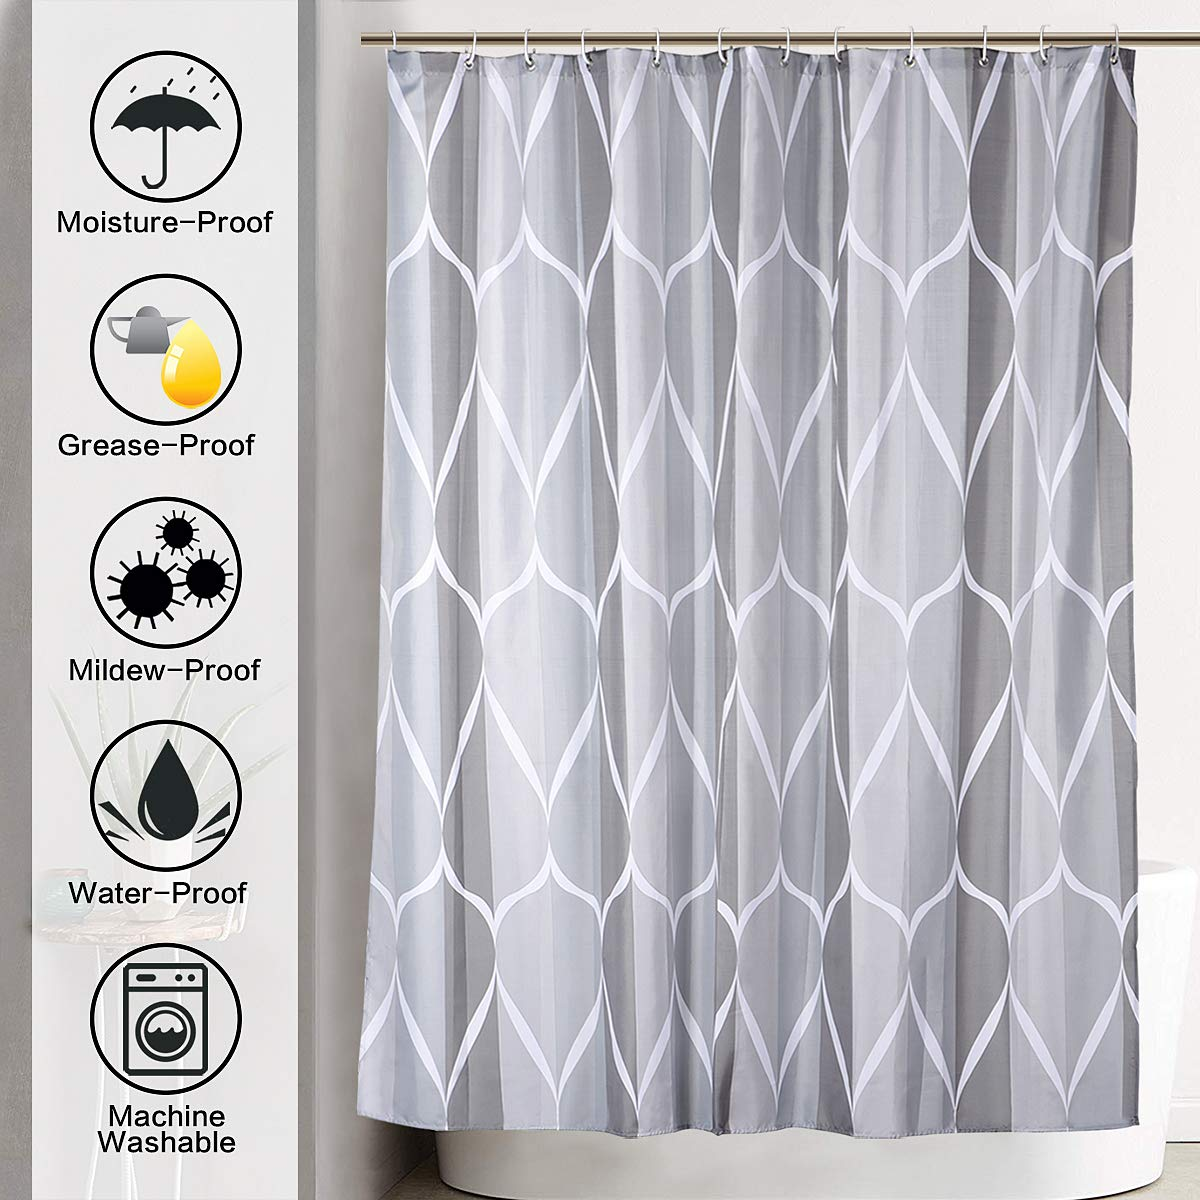 JRing Shower Curtain Polyester Fabric Waterproof Machine Washable with 12 Hooks 72x72 Inch by JRing (Image #2)